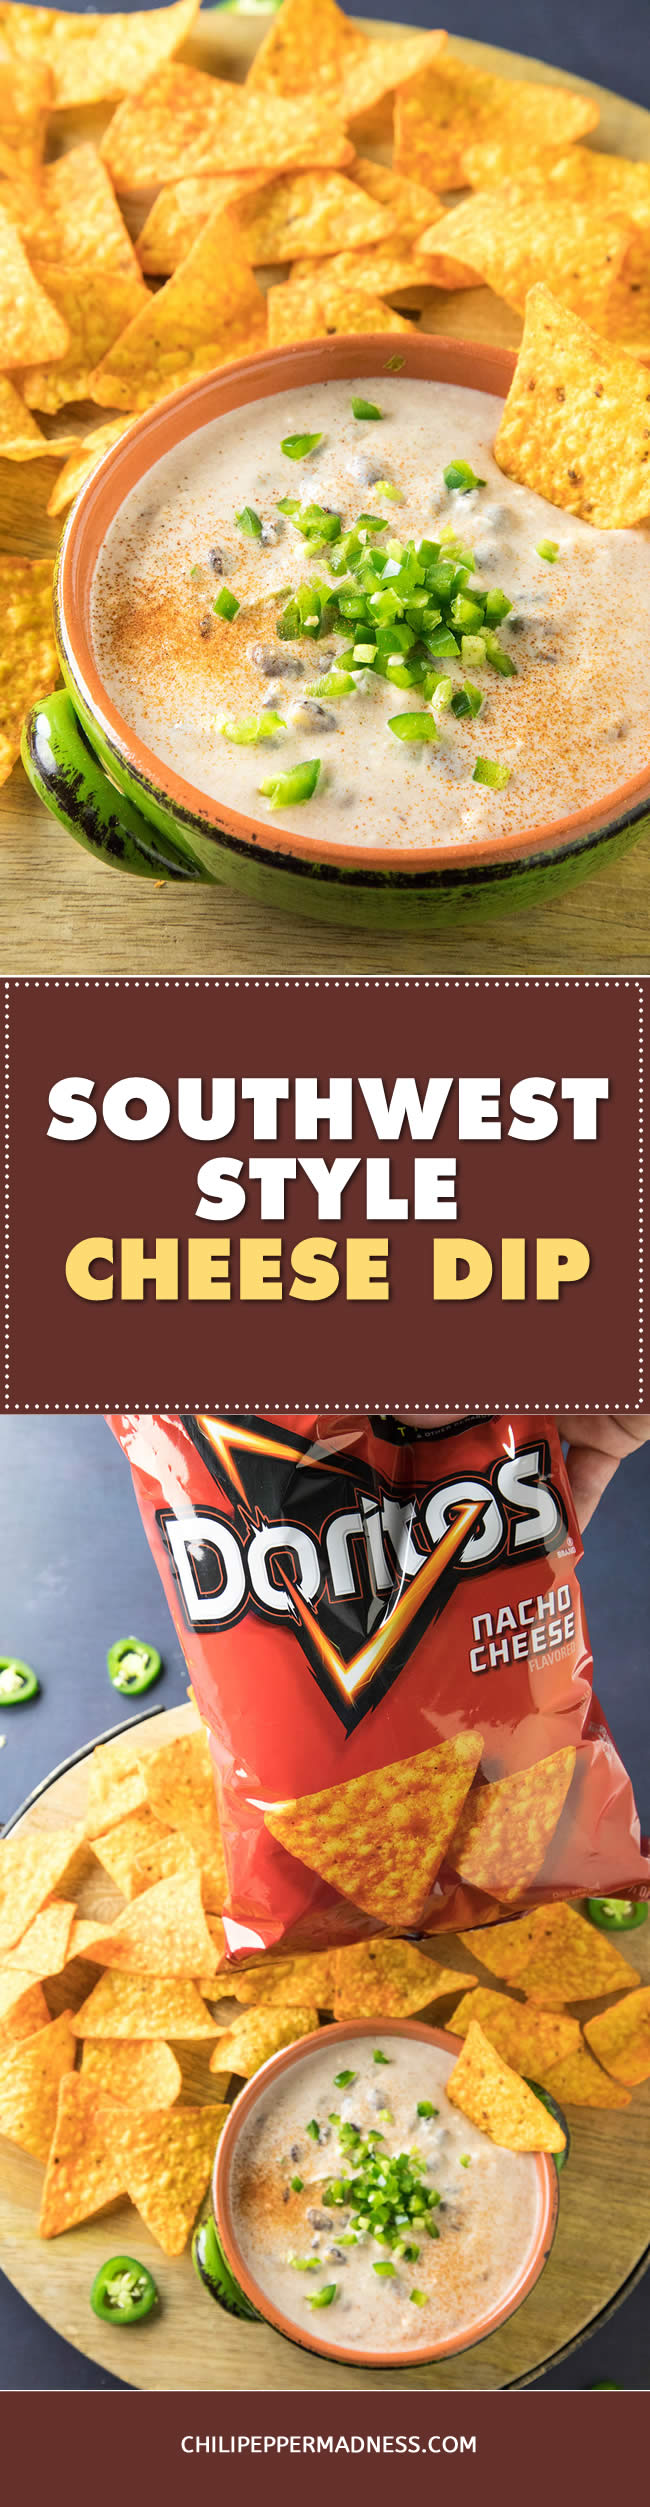 Southwest-Style Cheese Dip - Recipe